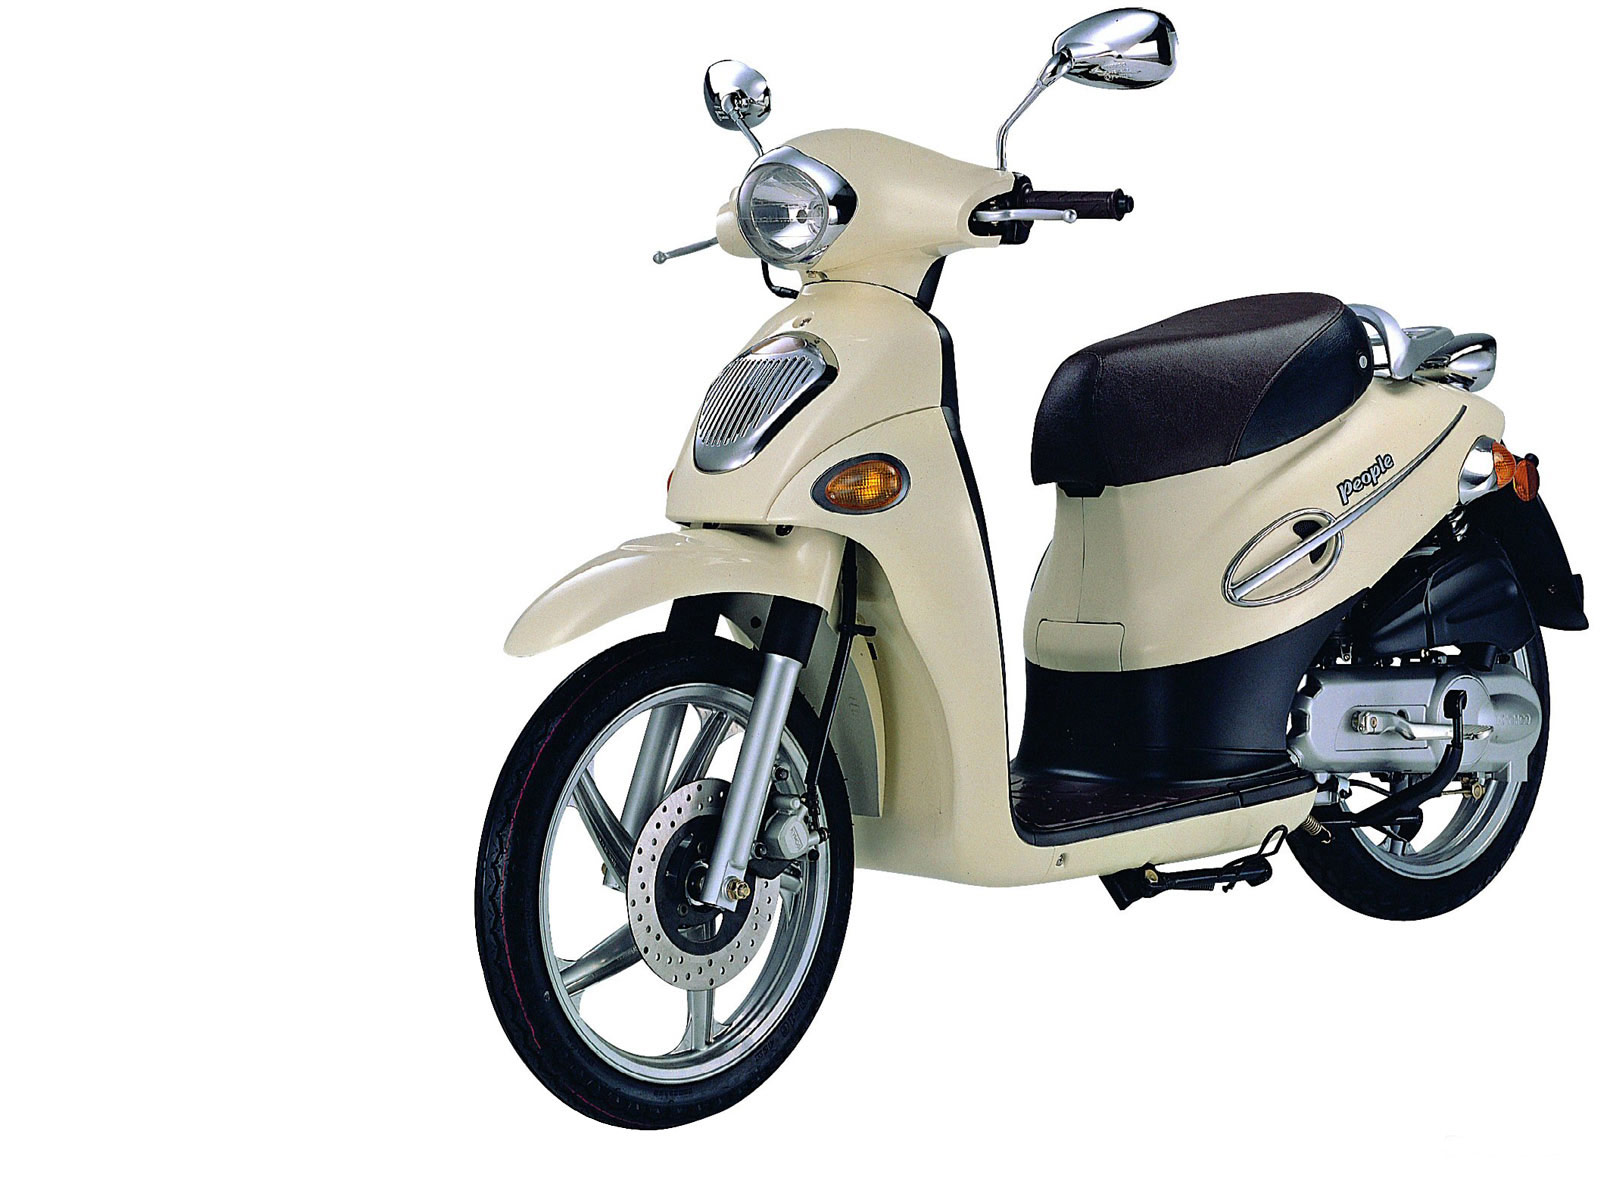 2005 kymco people scooter picture specification. Black Bedroom Furniture Sets. Home Design Ideas